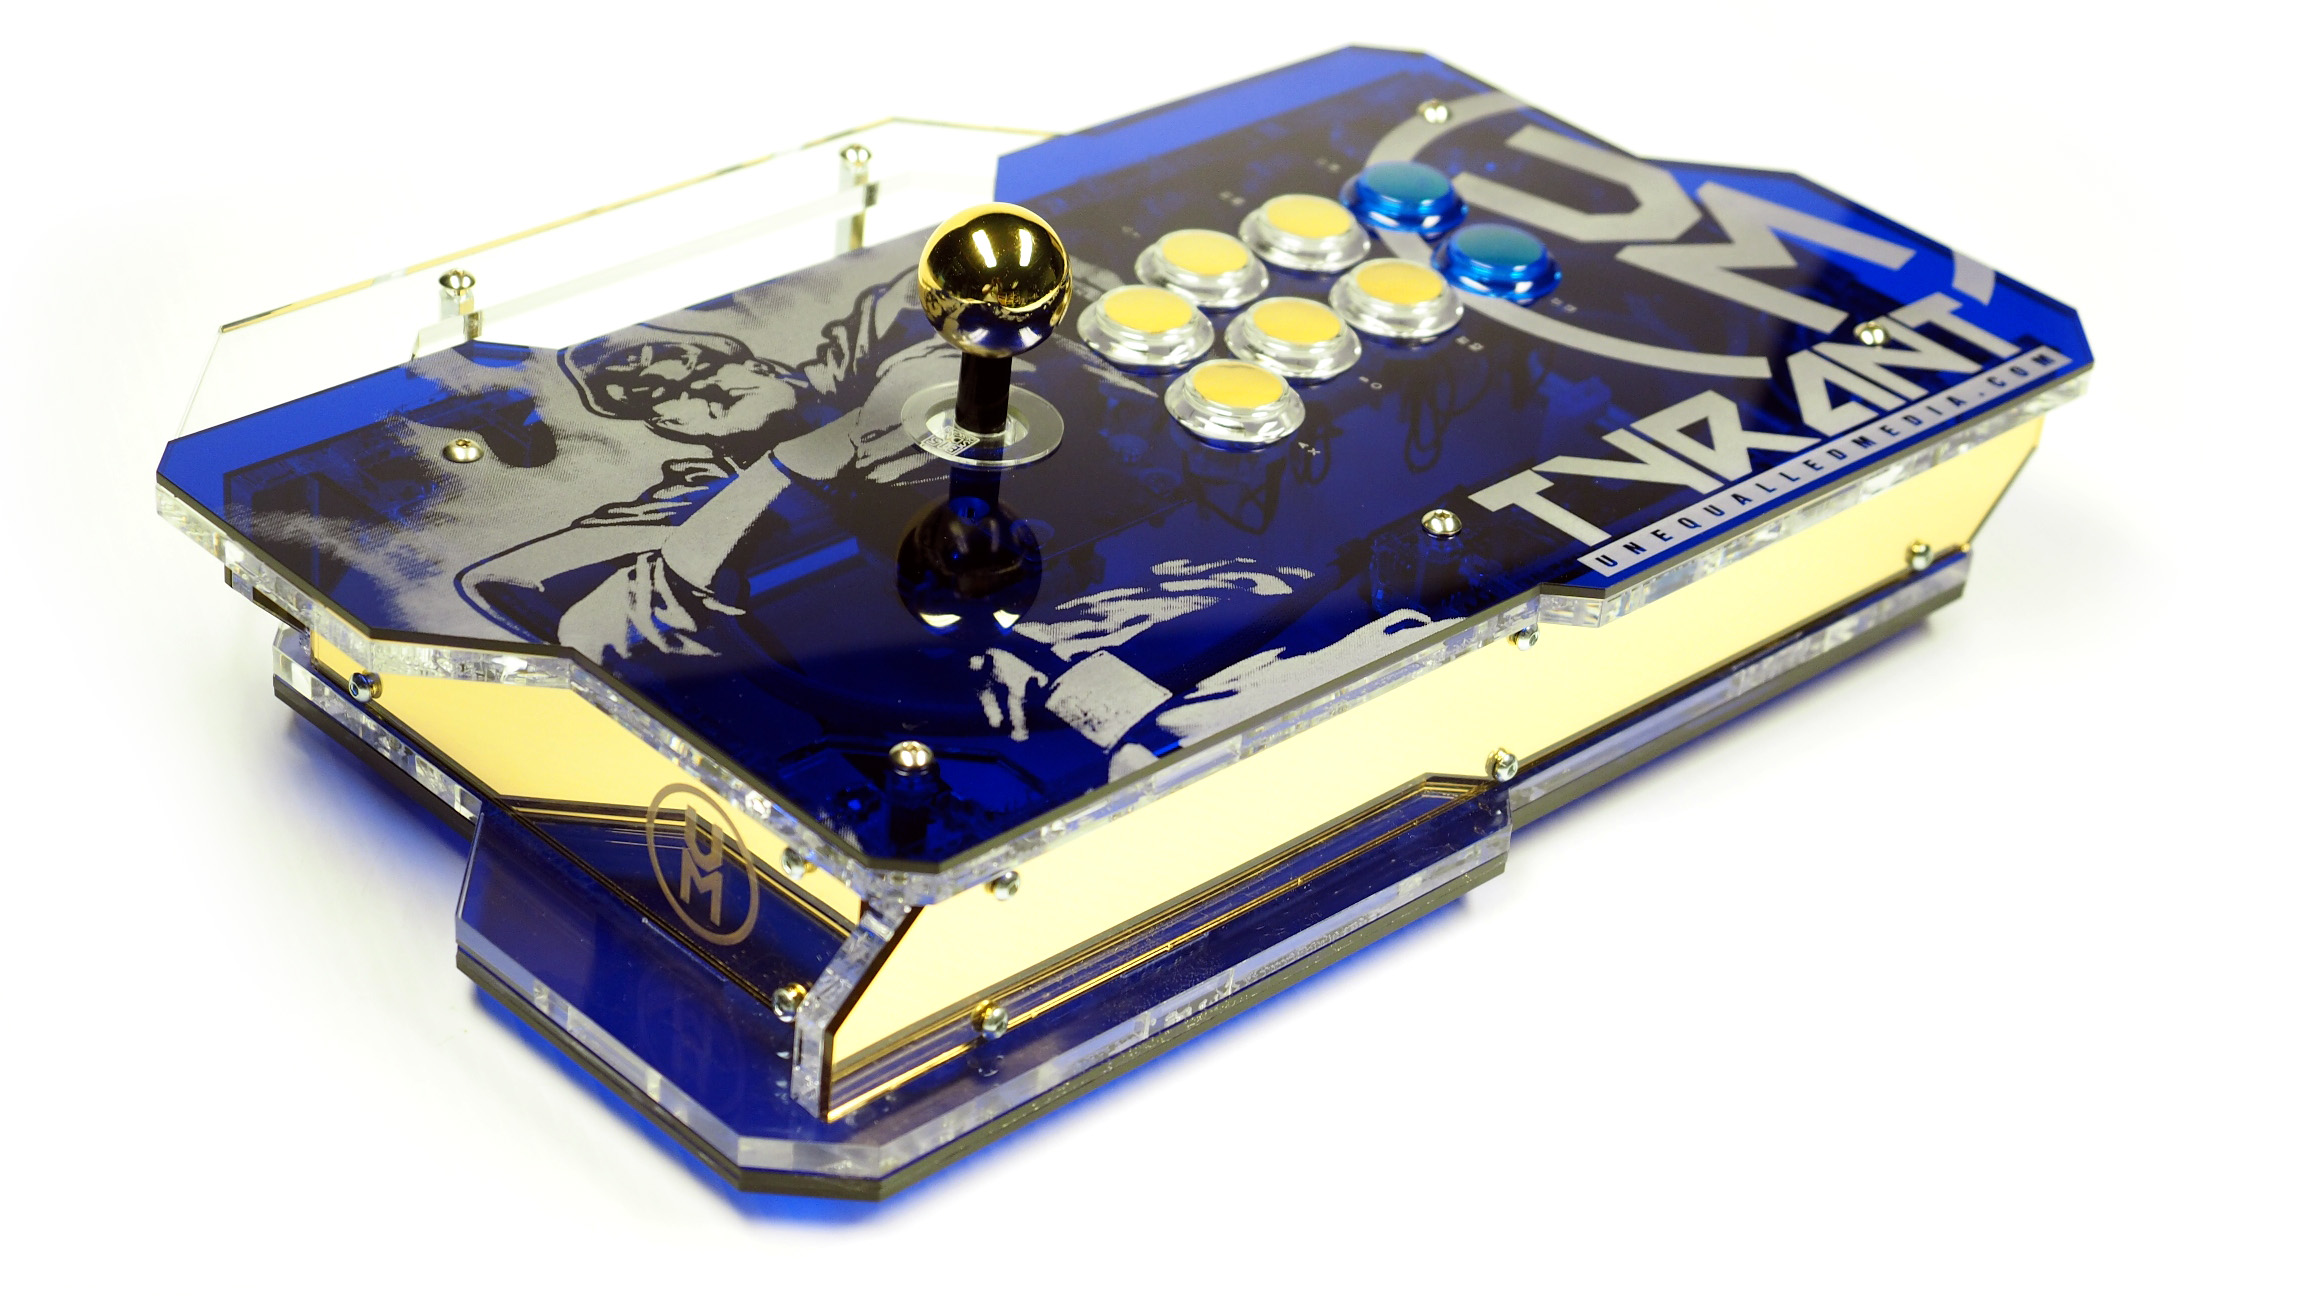 M.Bison UM X1 Custom Arcade Stick Resized 1d.JPG